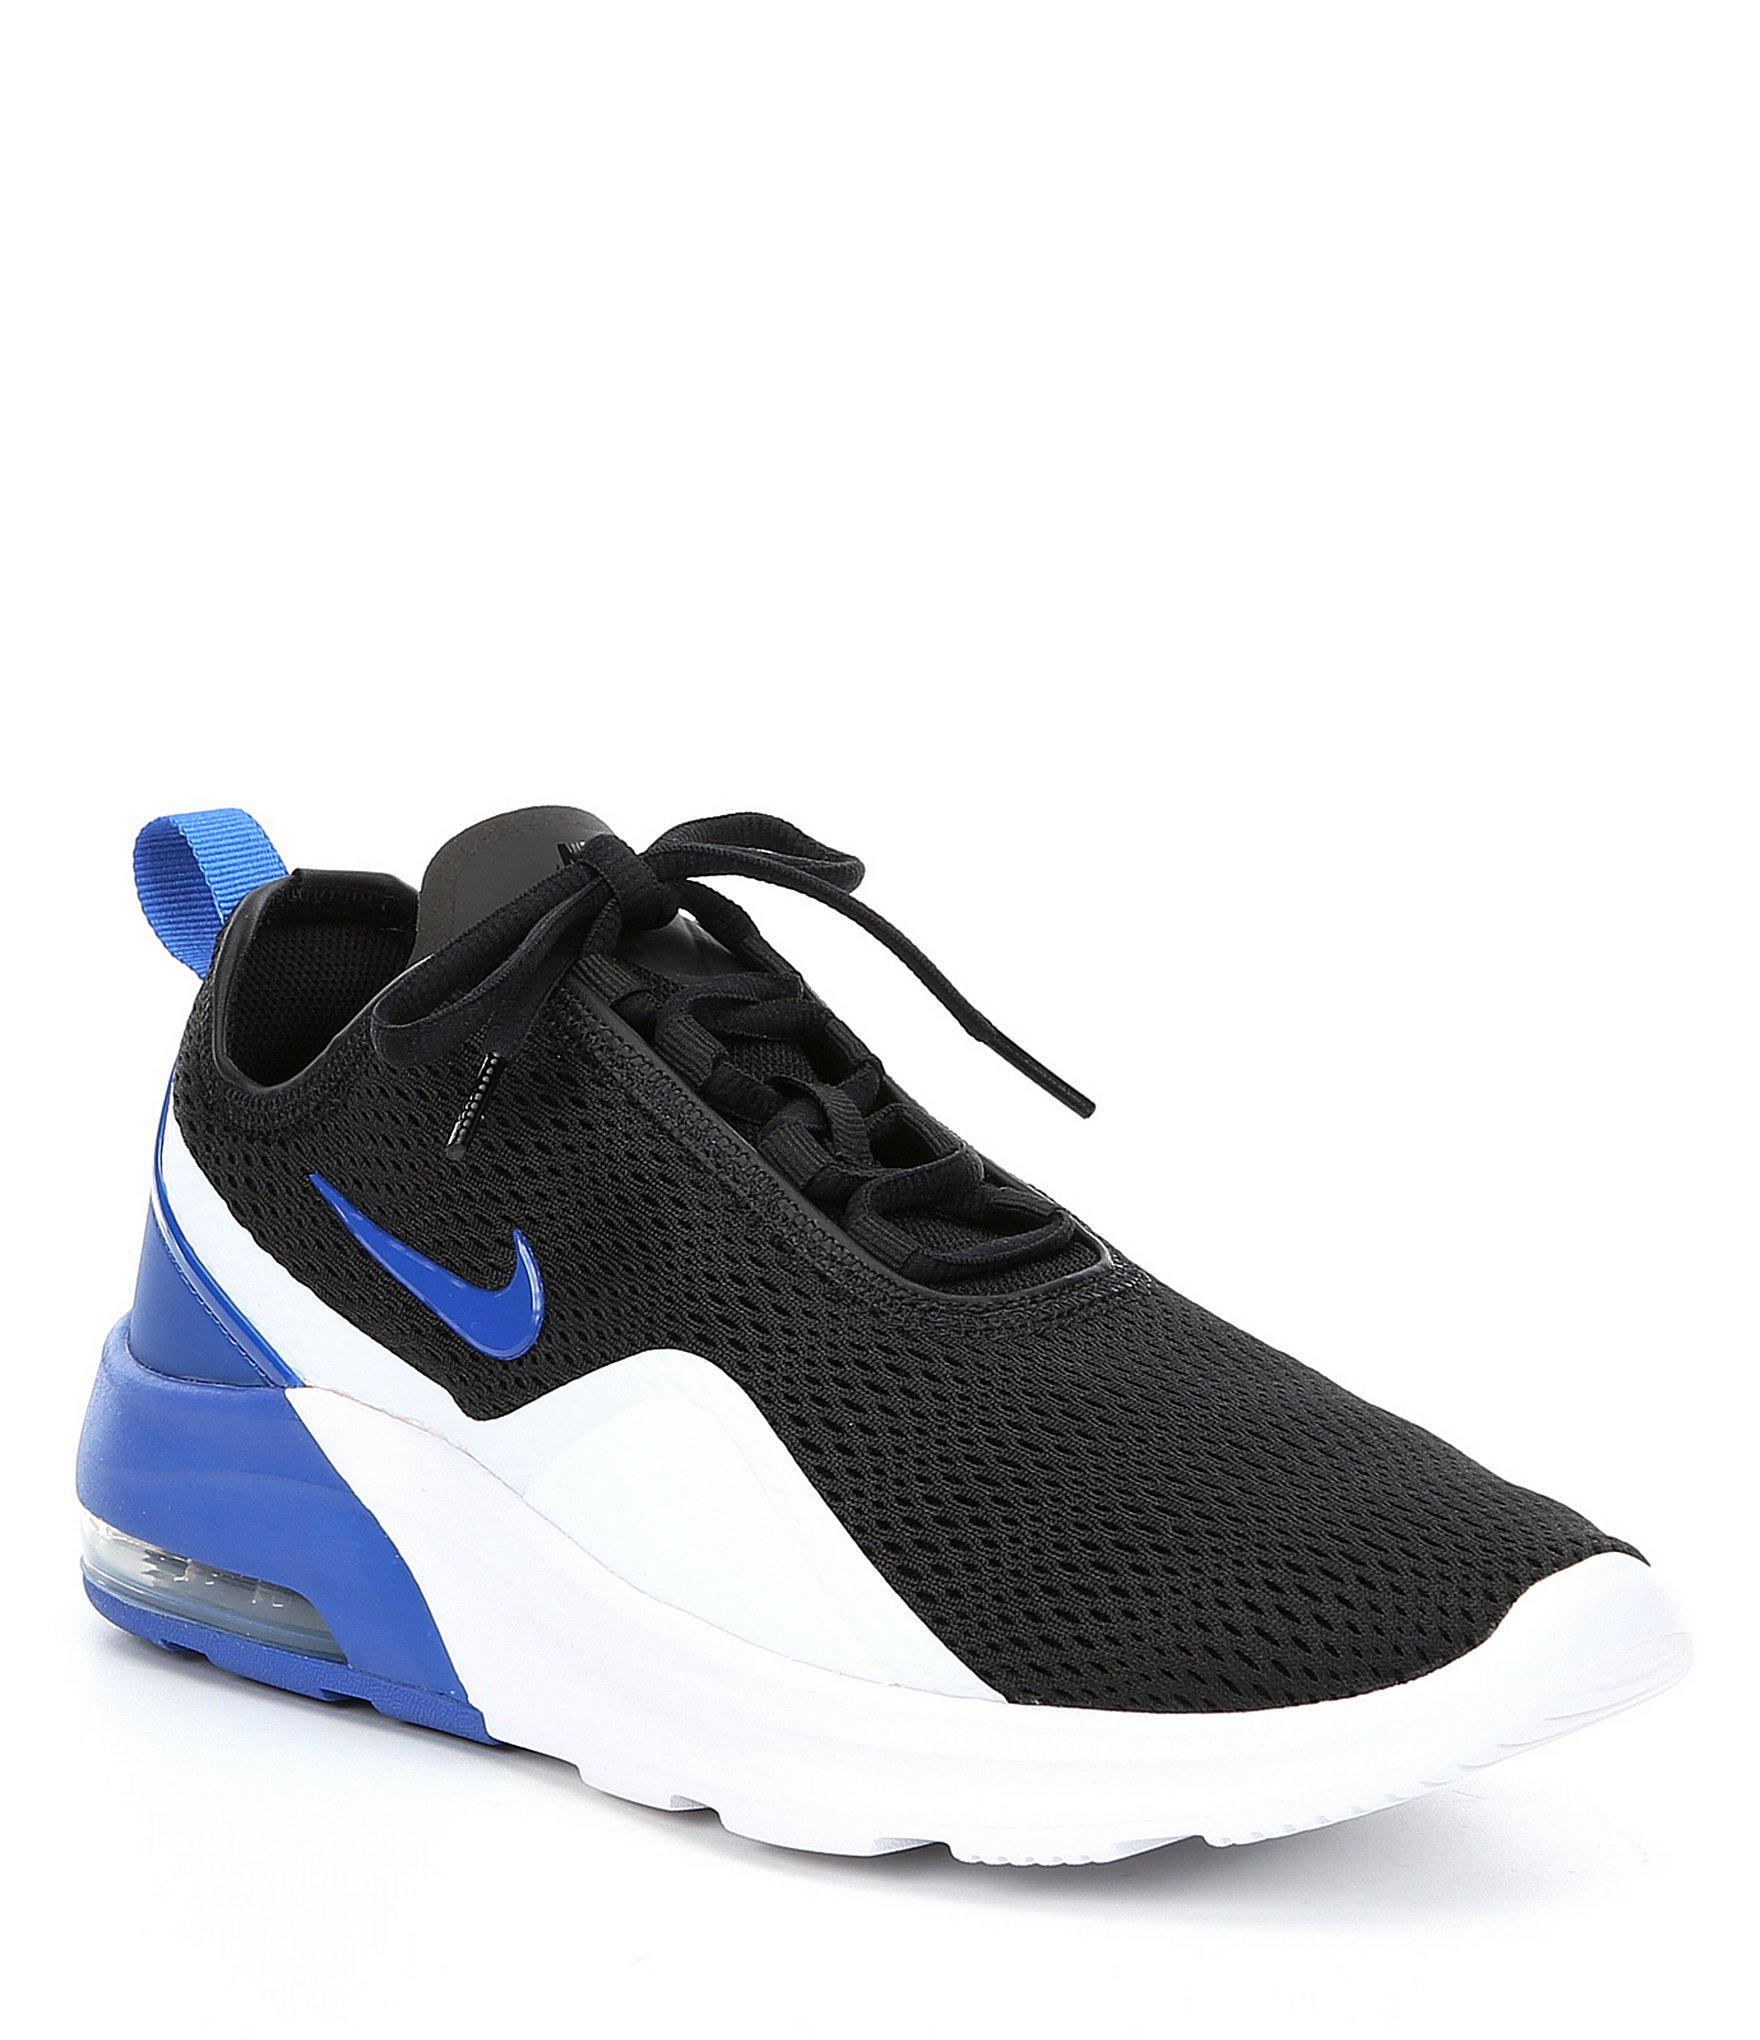 1becfc99c6c5 Lyst - Nike Men s Air Max Motion 2 Lifestyle Shoe in Black for Men